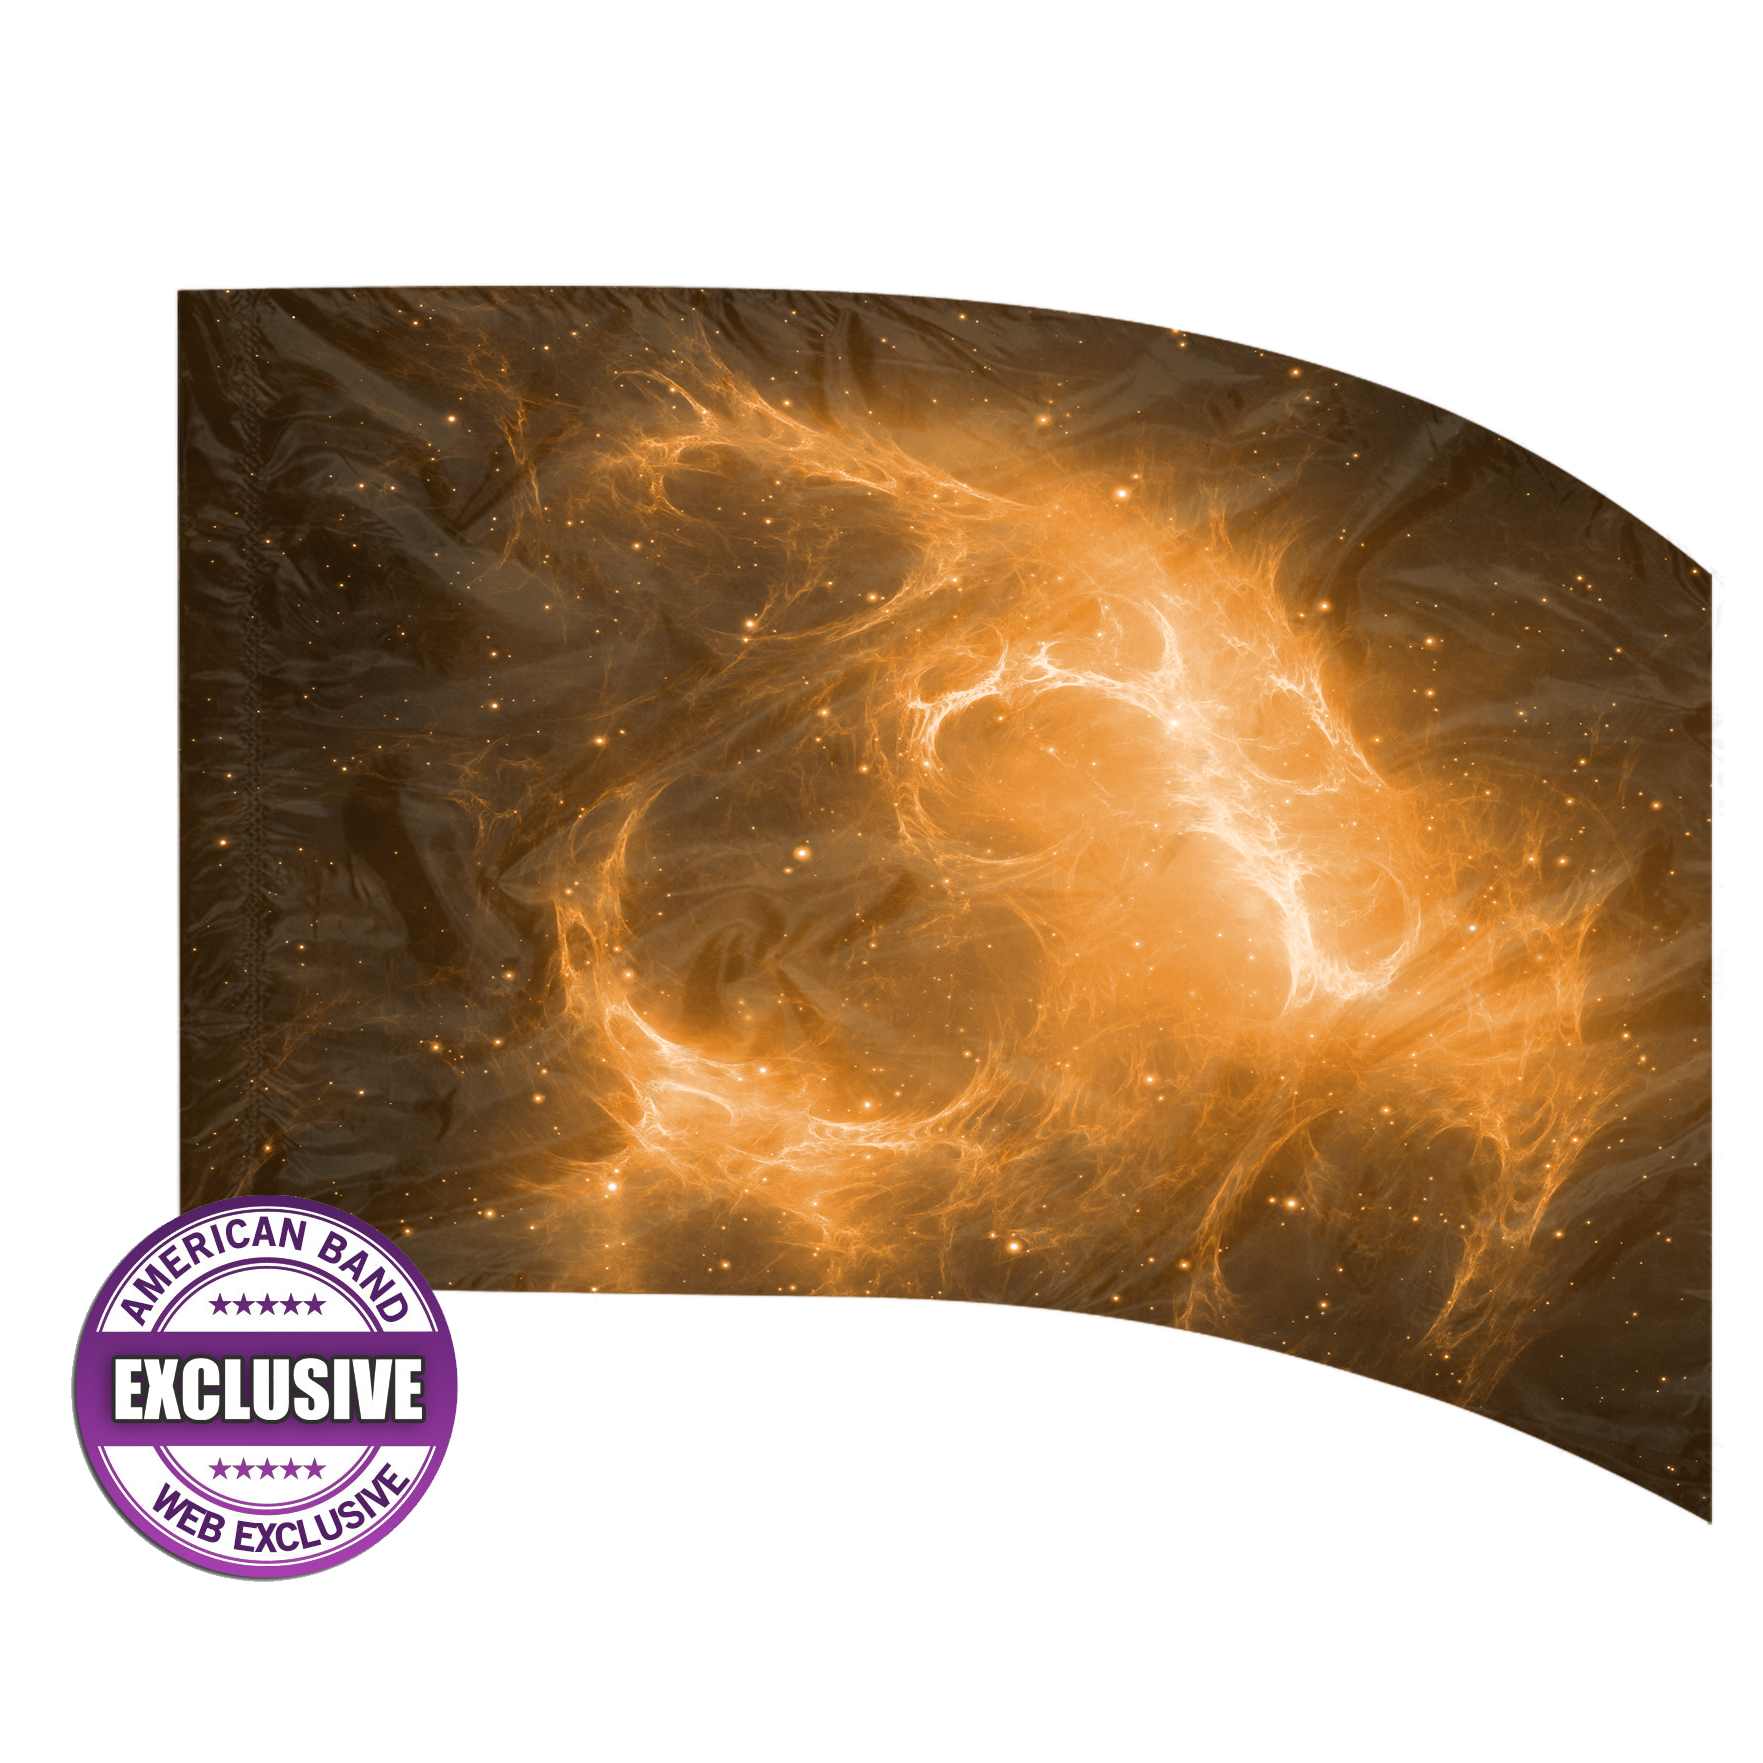 Made-to-Order Digital Cosmos Flags: Style 4 (Orange)